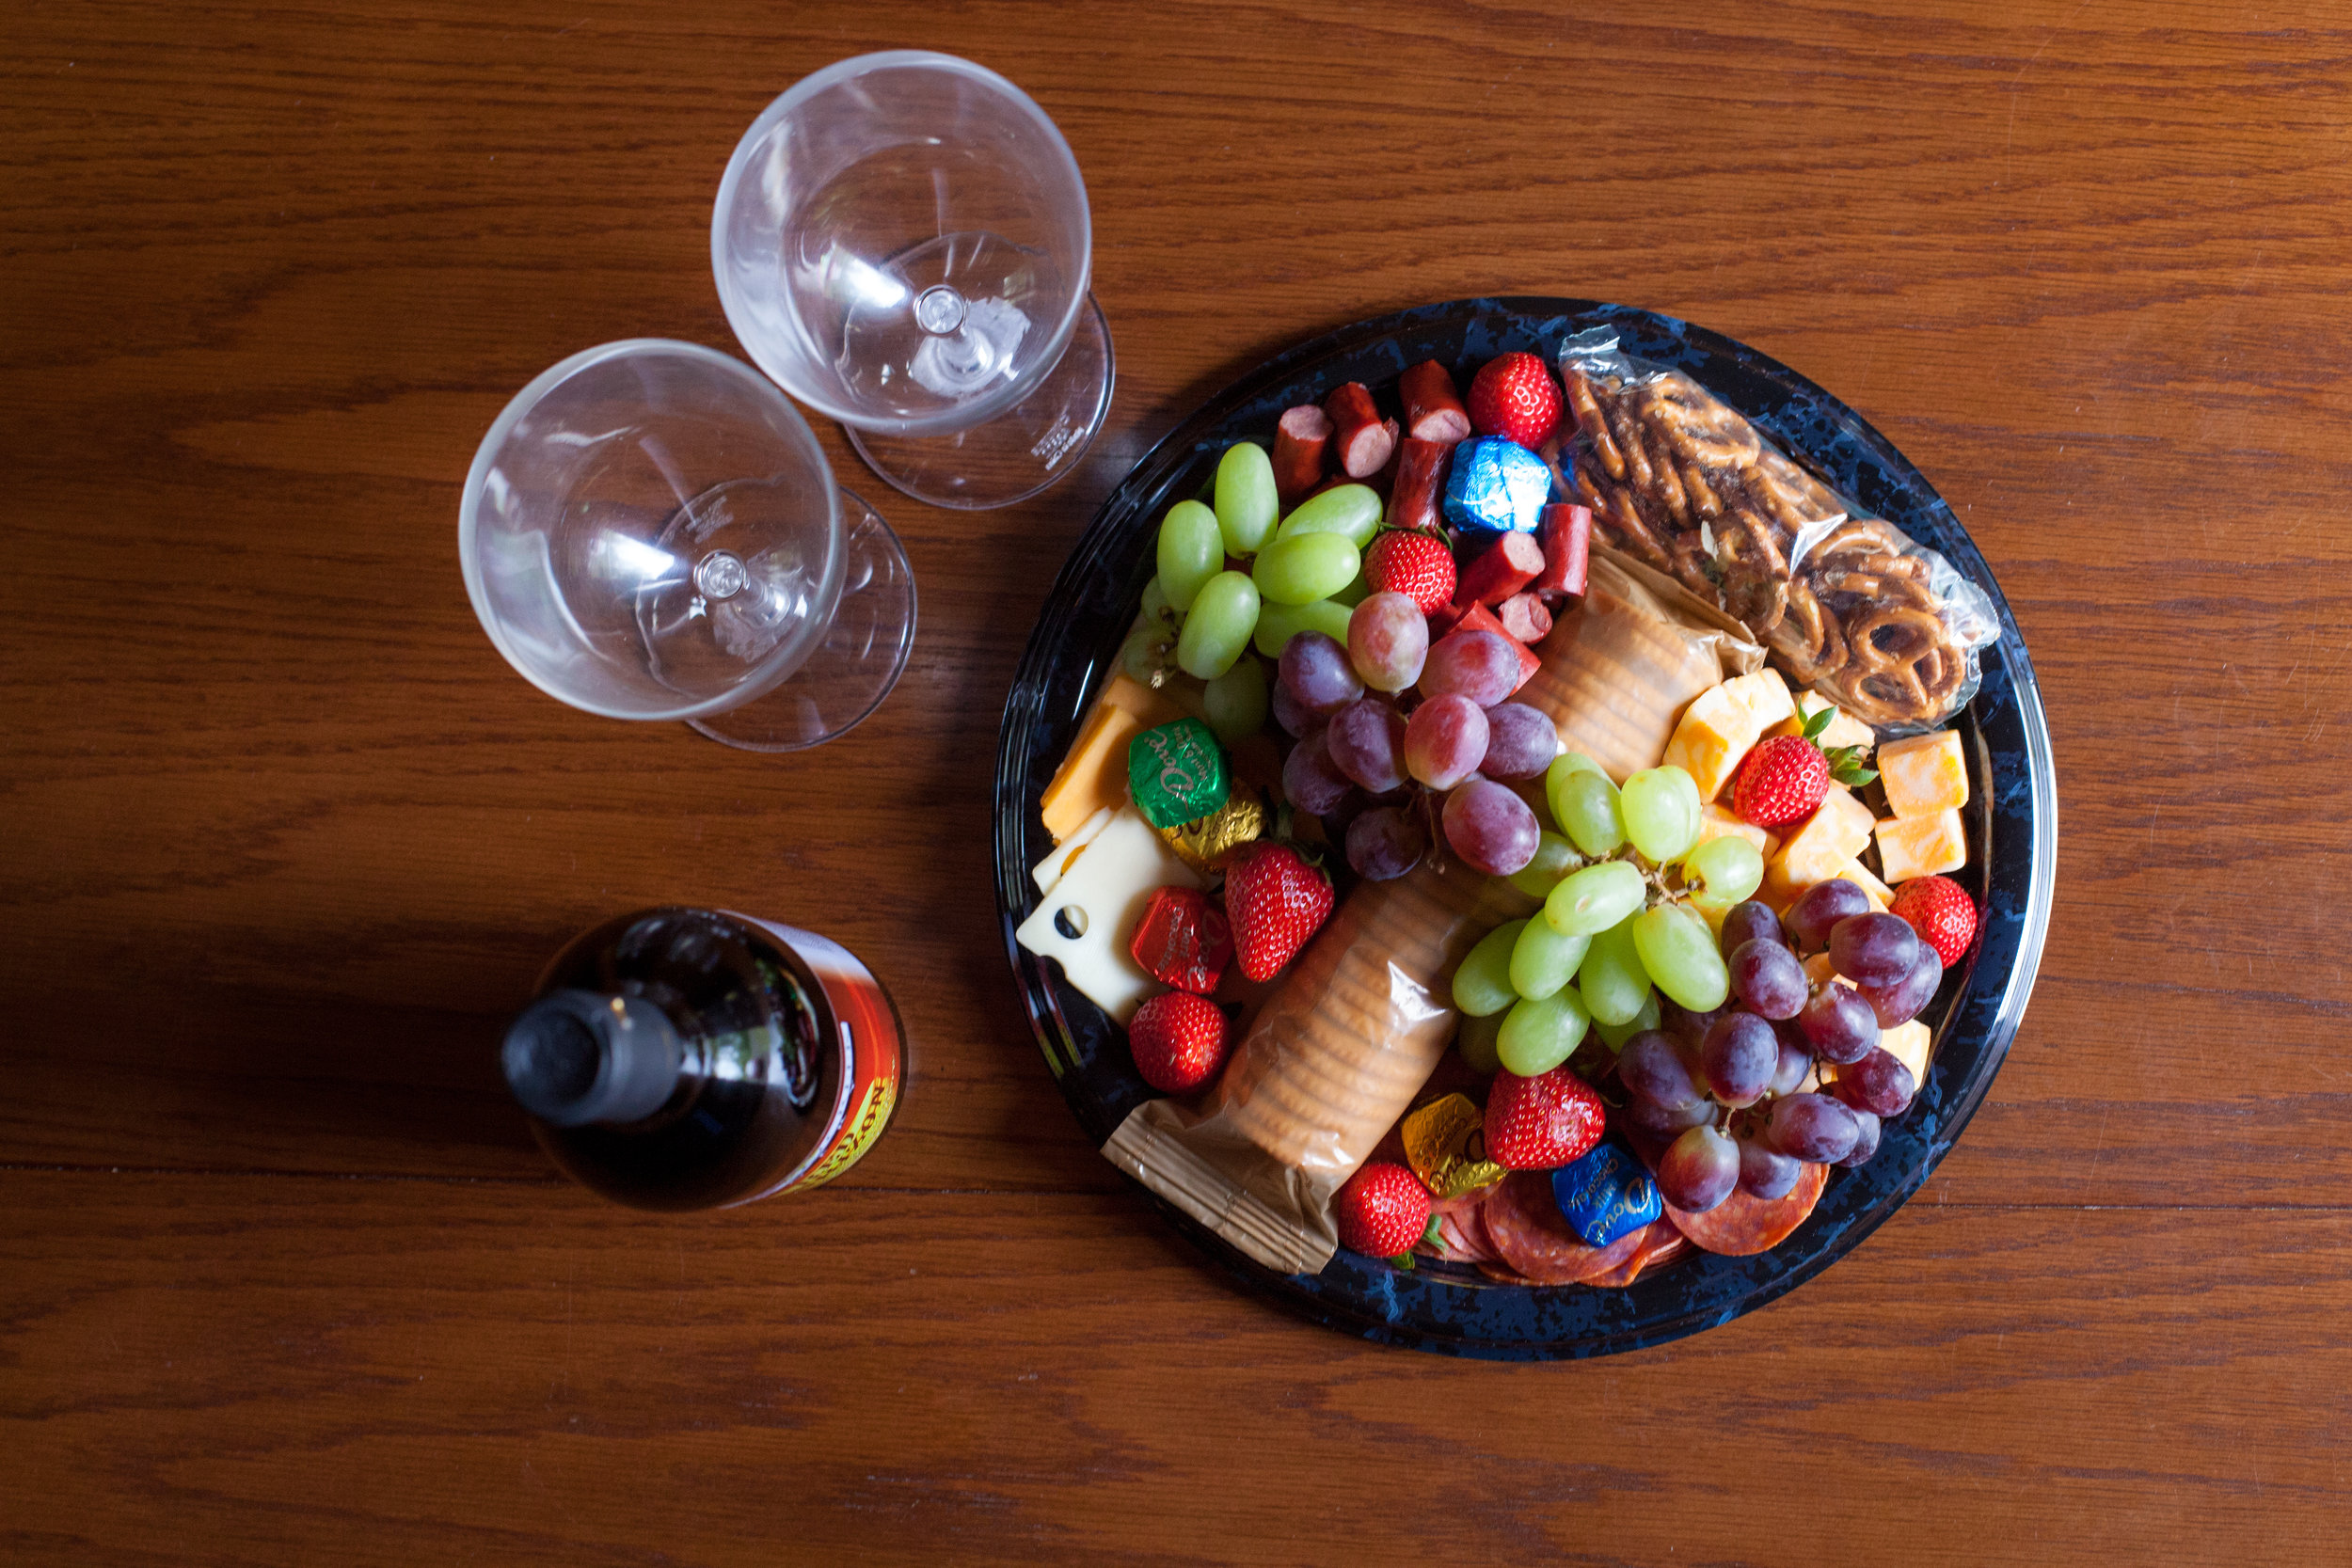 A wine and cheese platter add-on package.